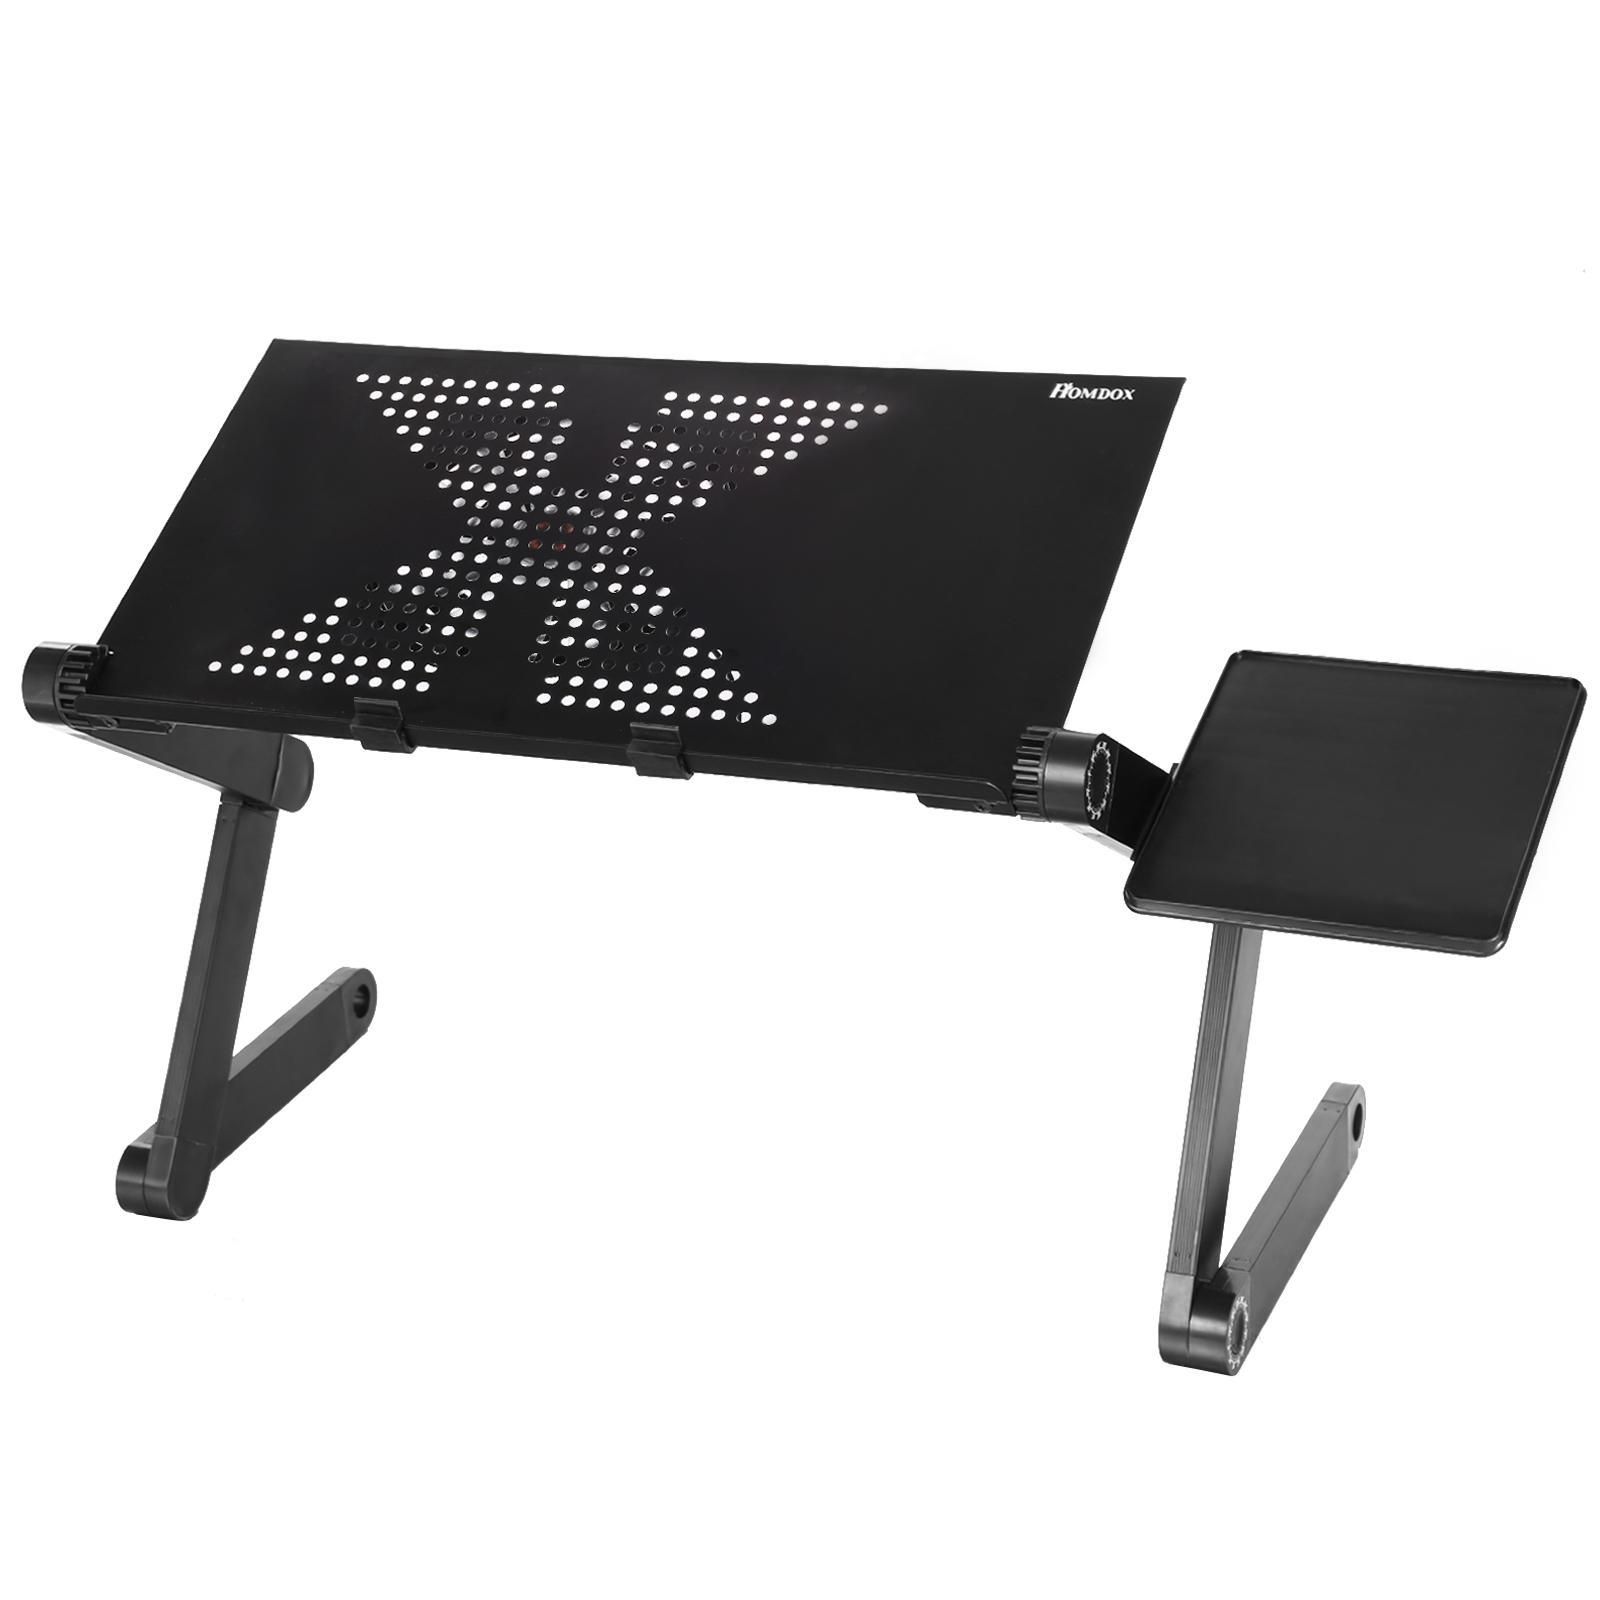 Table Clic Clac Table Table Pliable Bureau Meadow Tapis Ordinateur Portable Portable Réglable Noir Support